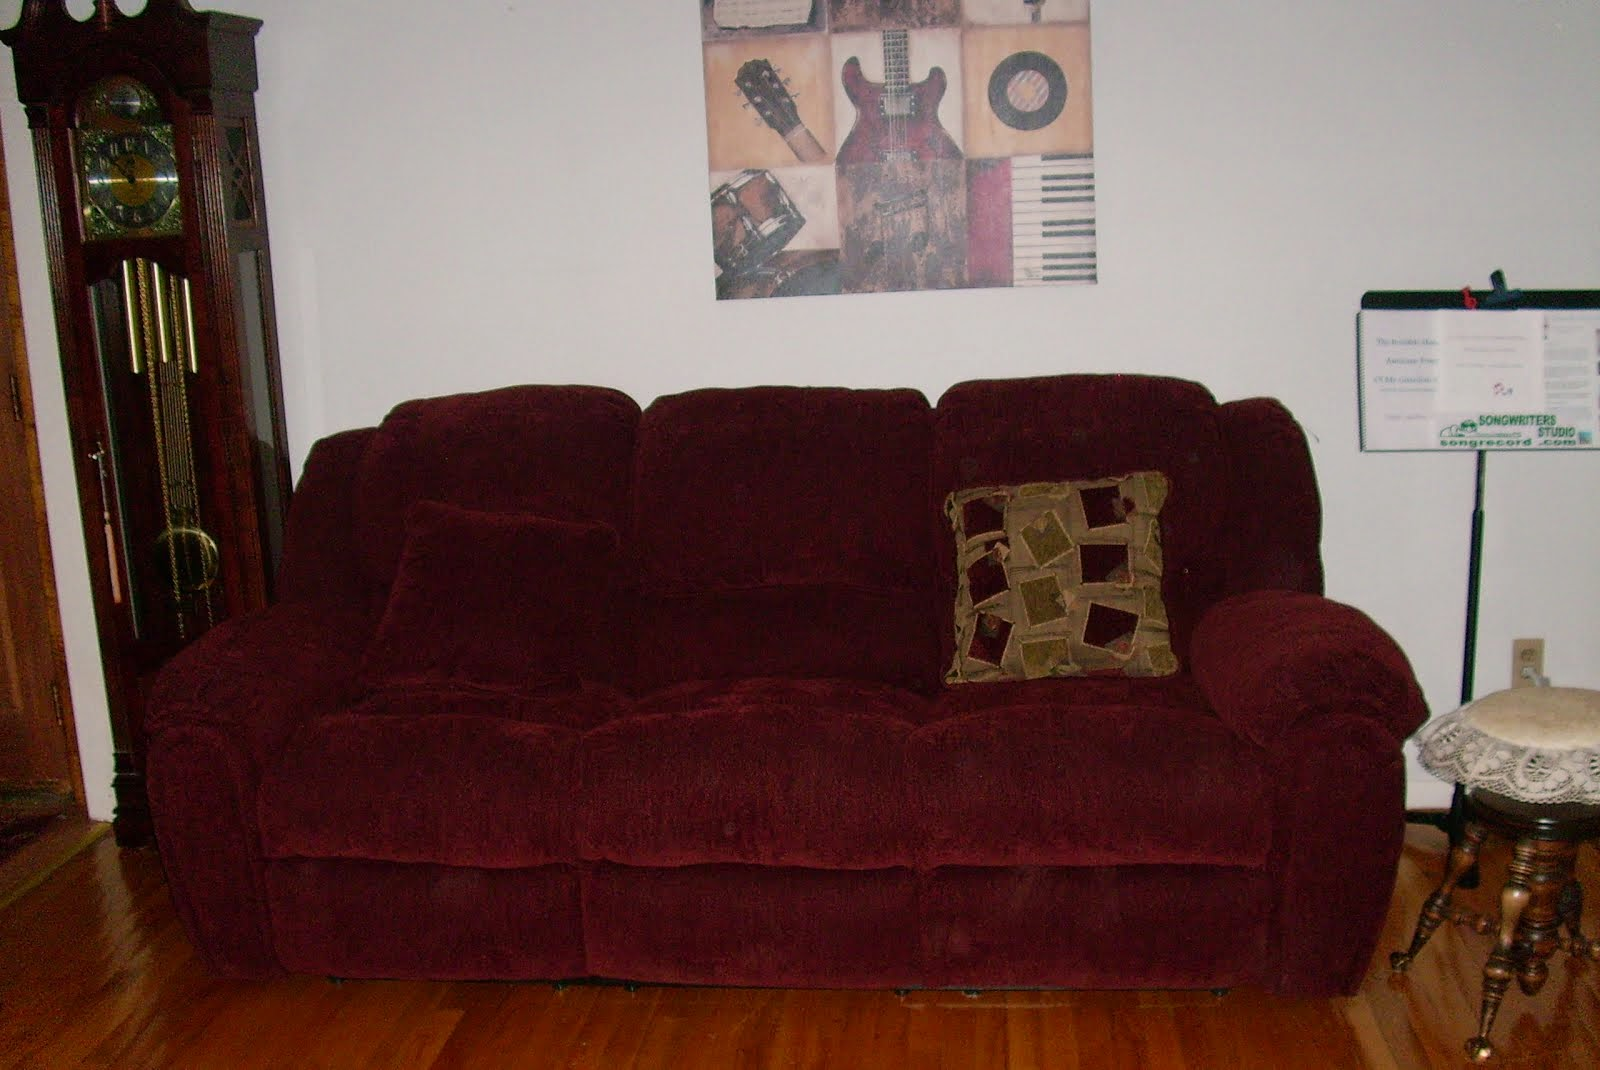 New Couch For Clara !